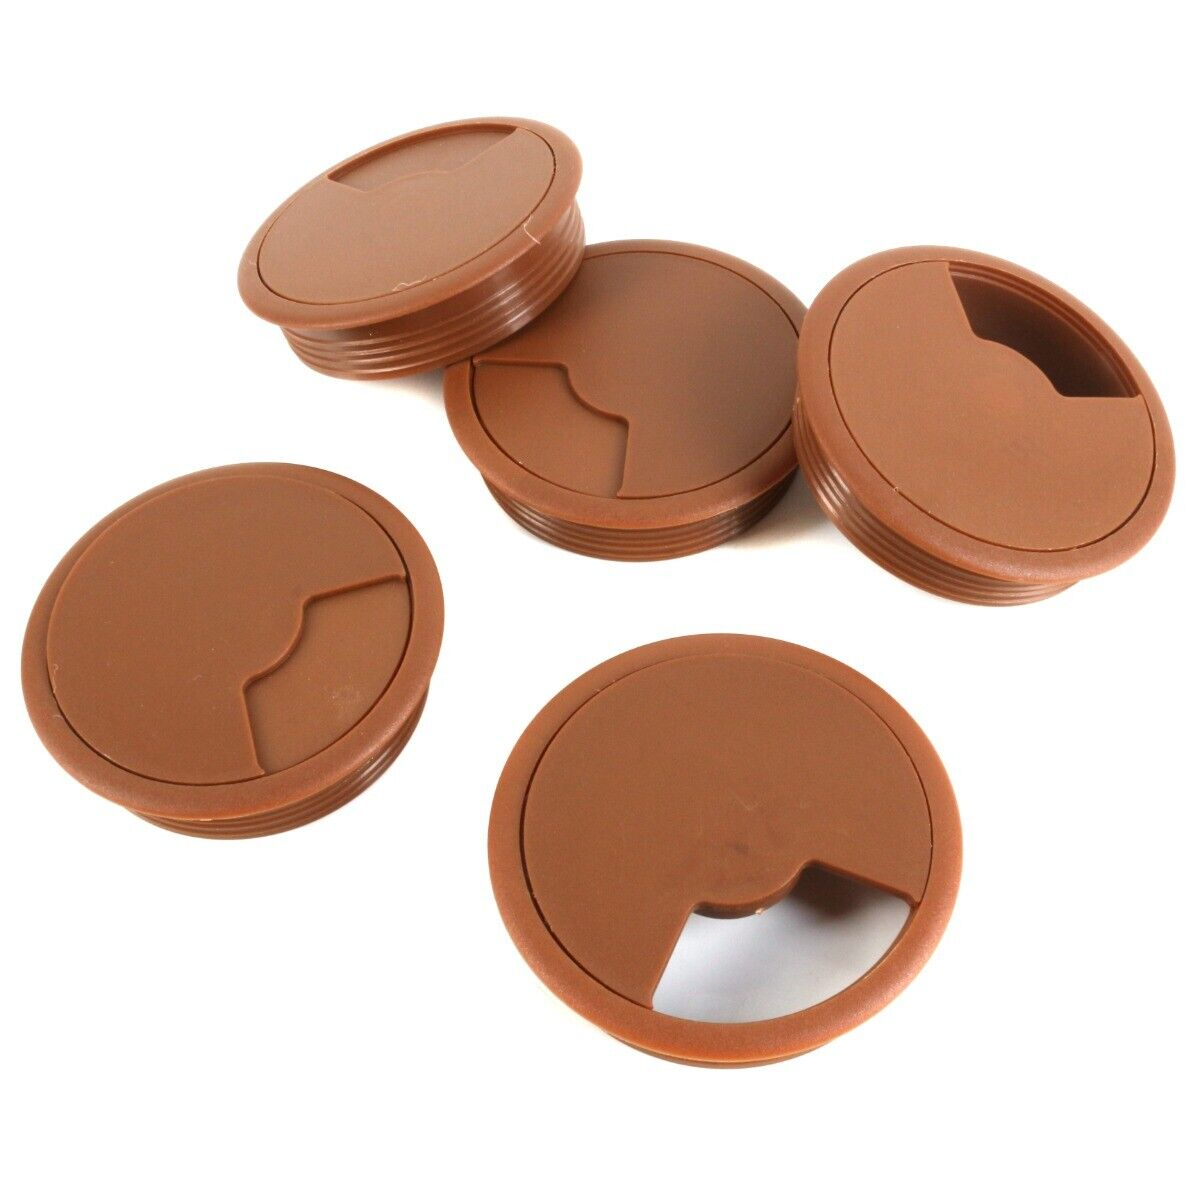 5x BROWN TABLE GROMMETS 80mm PC Computer TV Speakers Media Monitor Cable Tidy UK